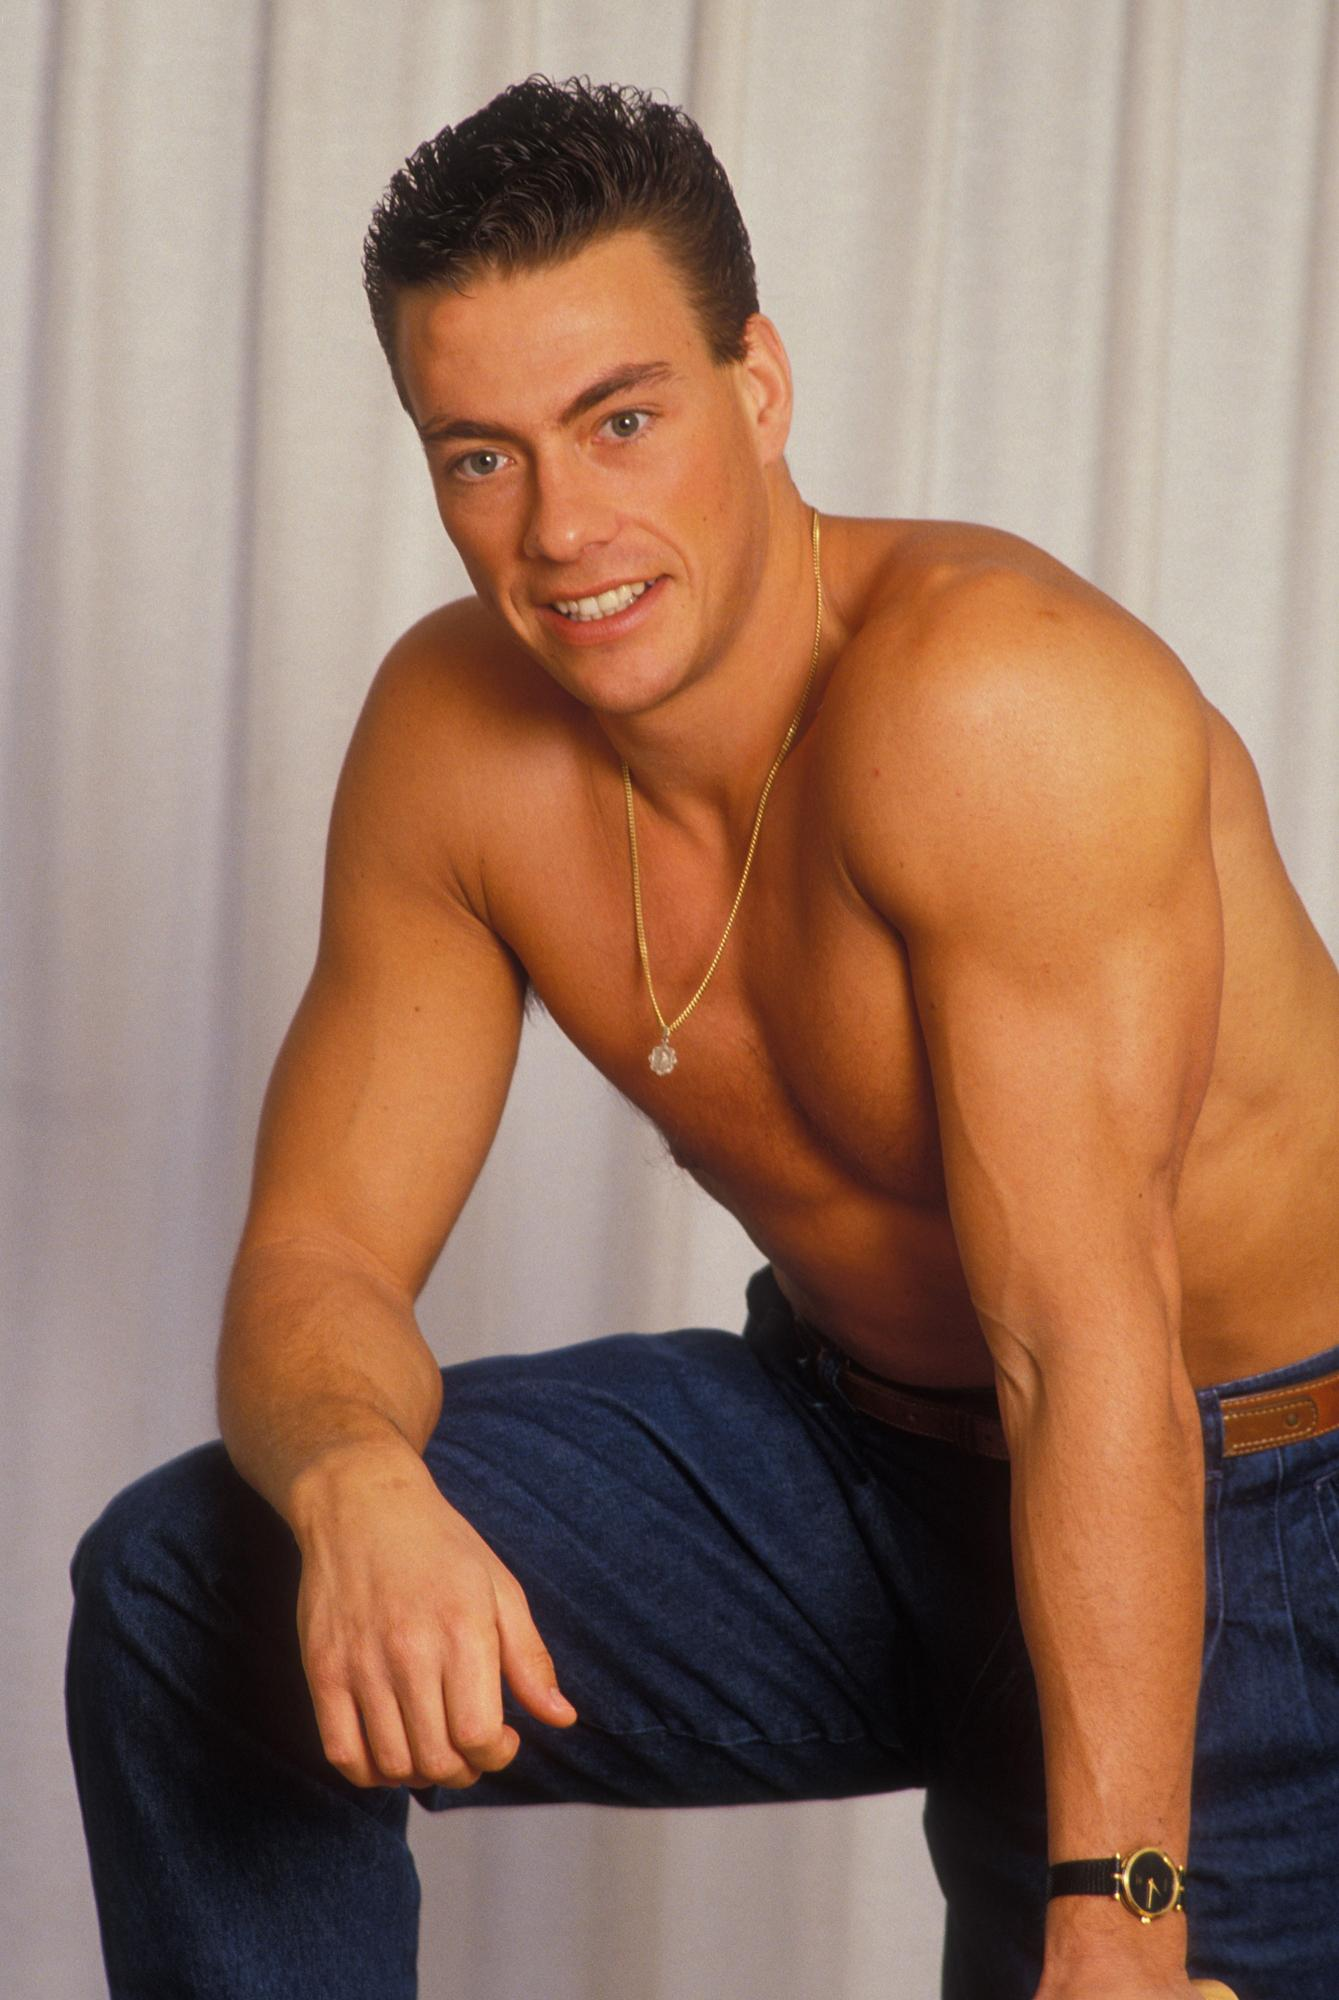 Jean-claude Van Damme - New Photos